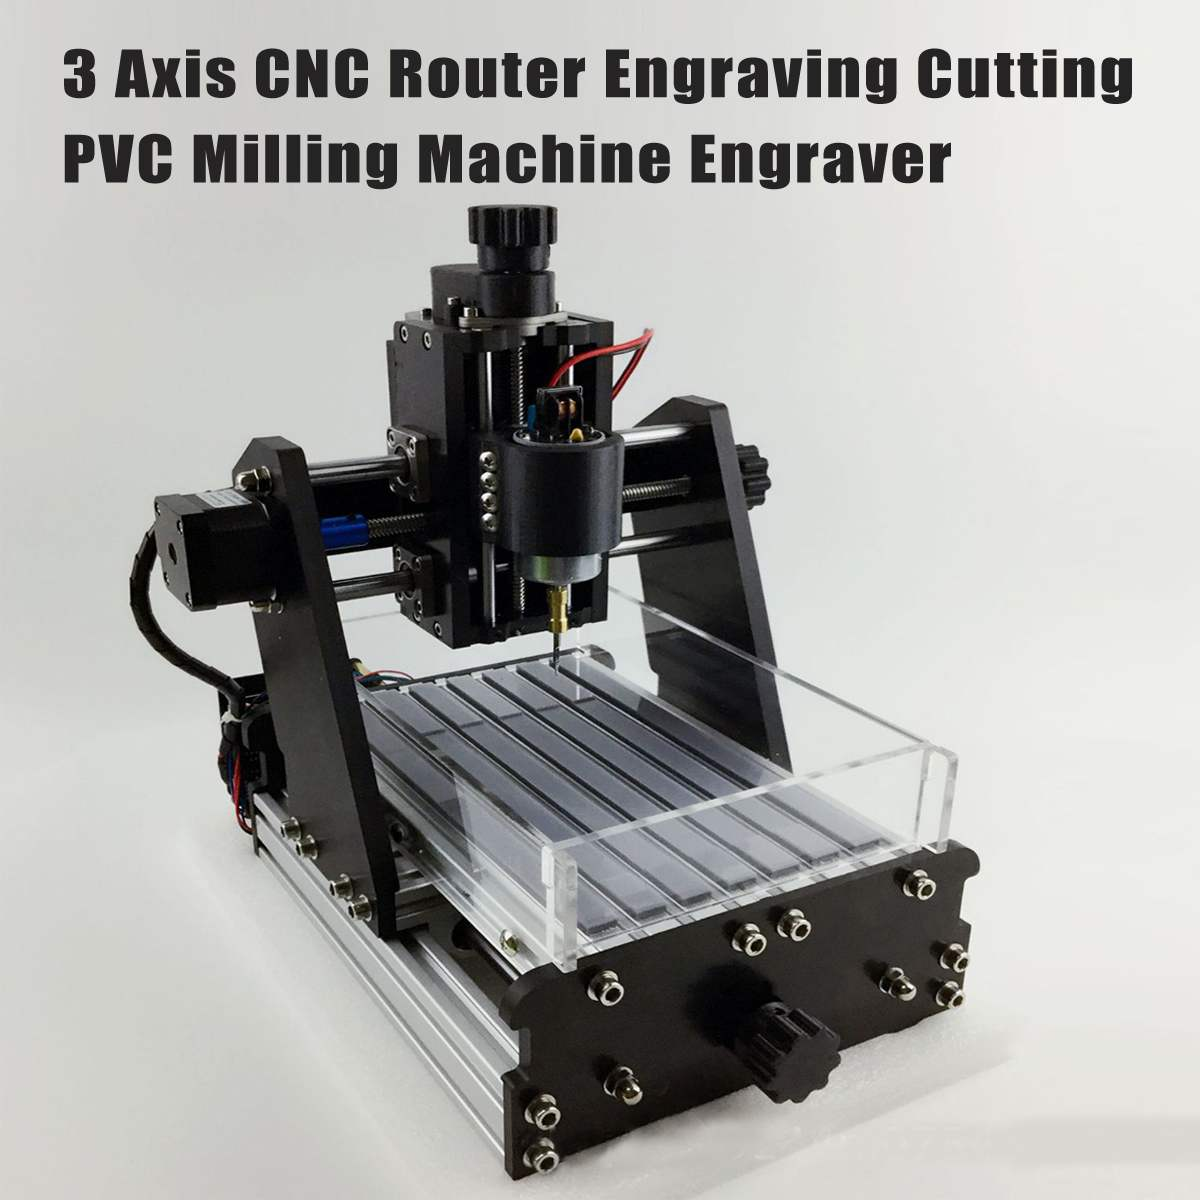 3 Axises CNC Router Engraving Cutting PVC Milling Machine Engraver DIY Mini Engraving Machine No Laser 100V-240V Wood Router